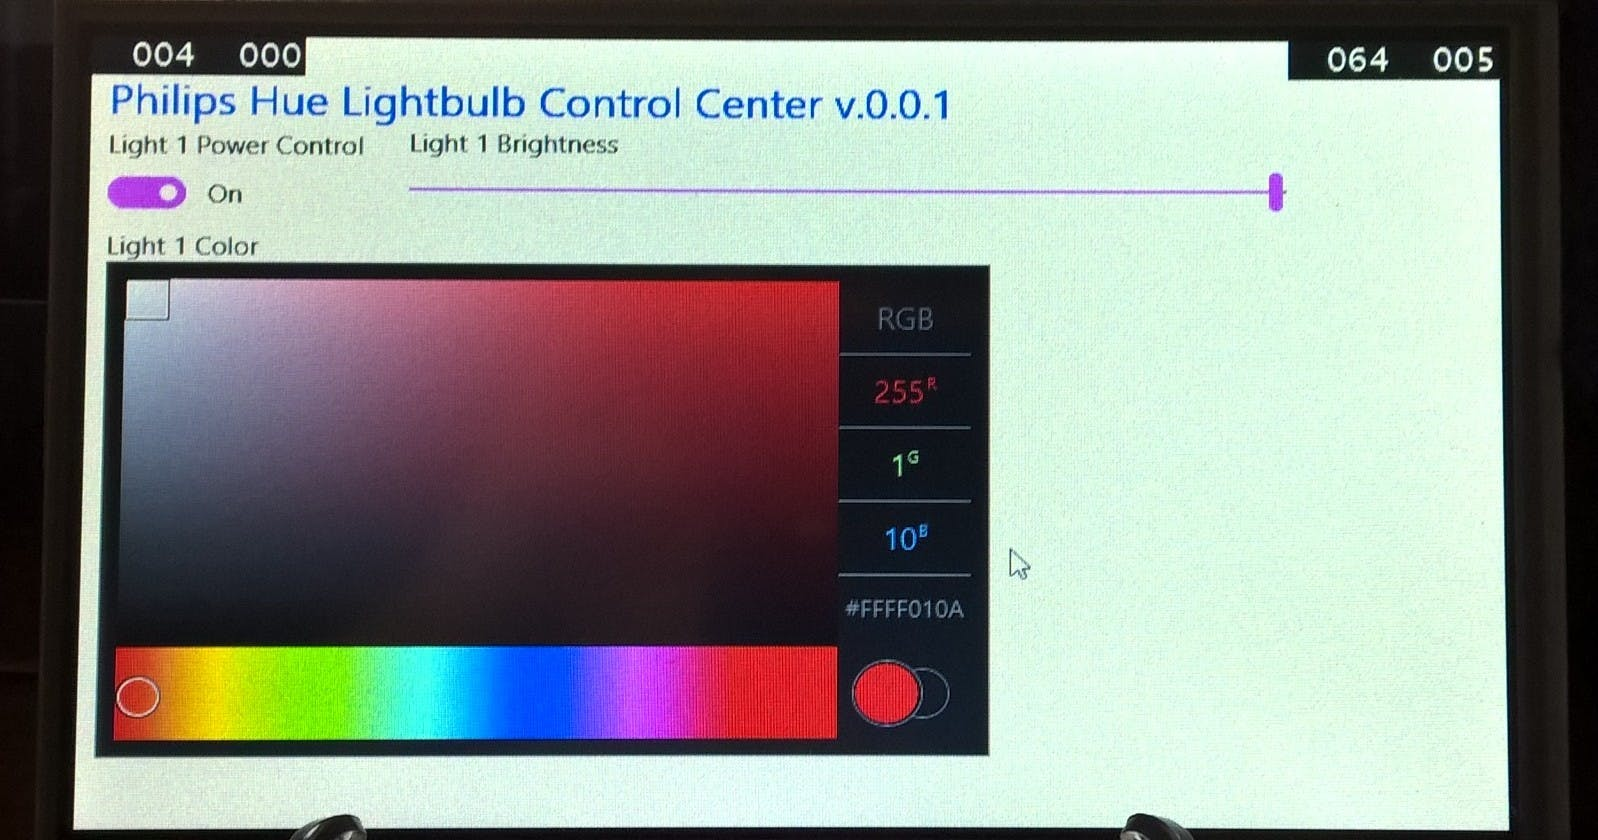 WinIoT :  Philips Hue Touchscreen Panel Application